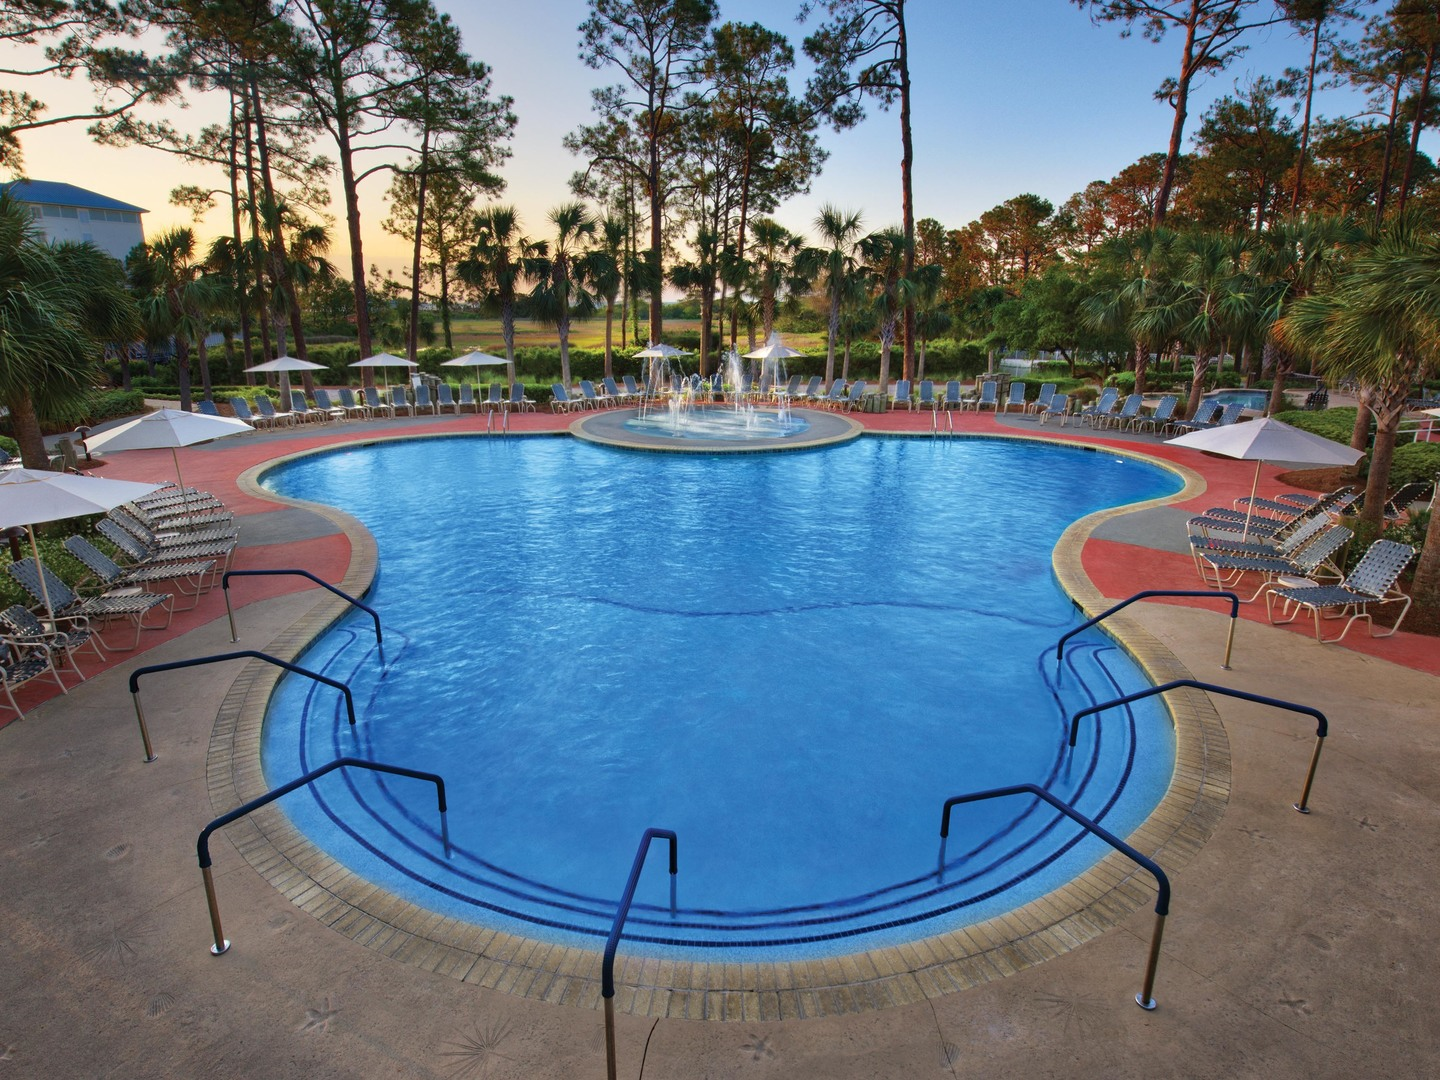 Marriott's SurfWatch<span class='trademark'>®</span> High Tides Pool. Marriott's SurfWatch<span class='trademark'>®</span> is located in Hilton Head Island, South Carolina United States.